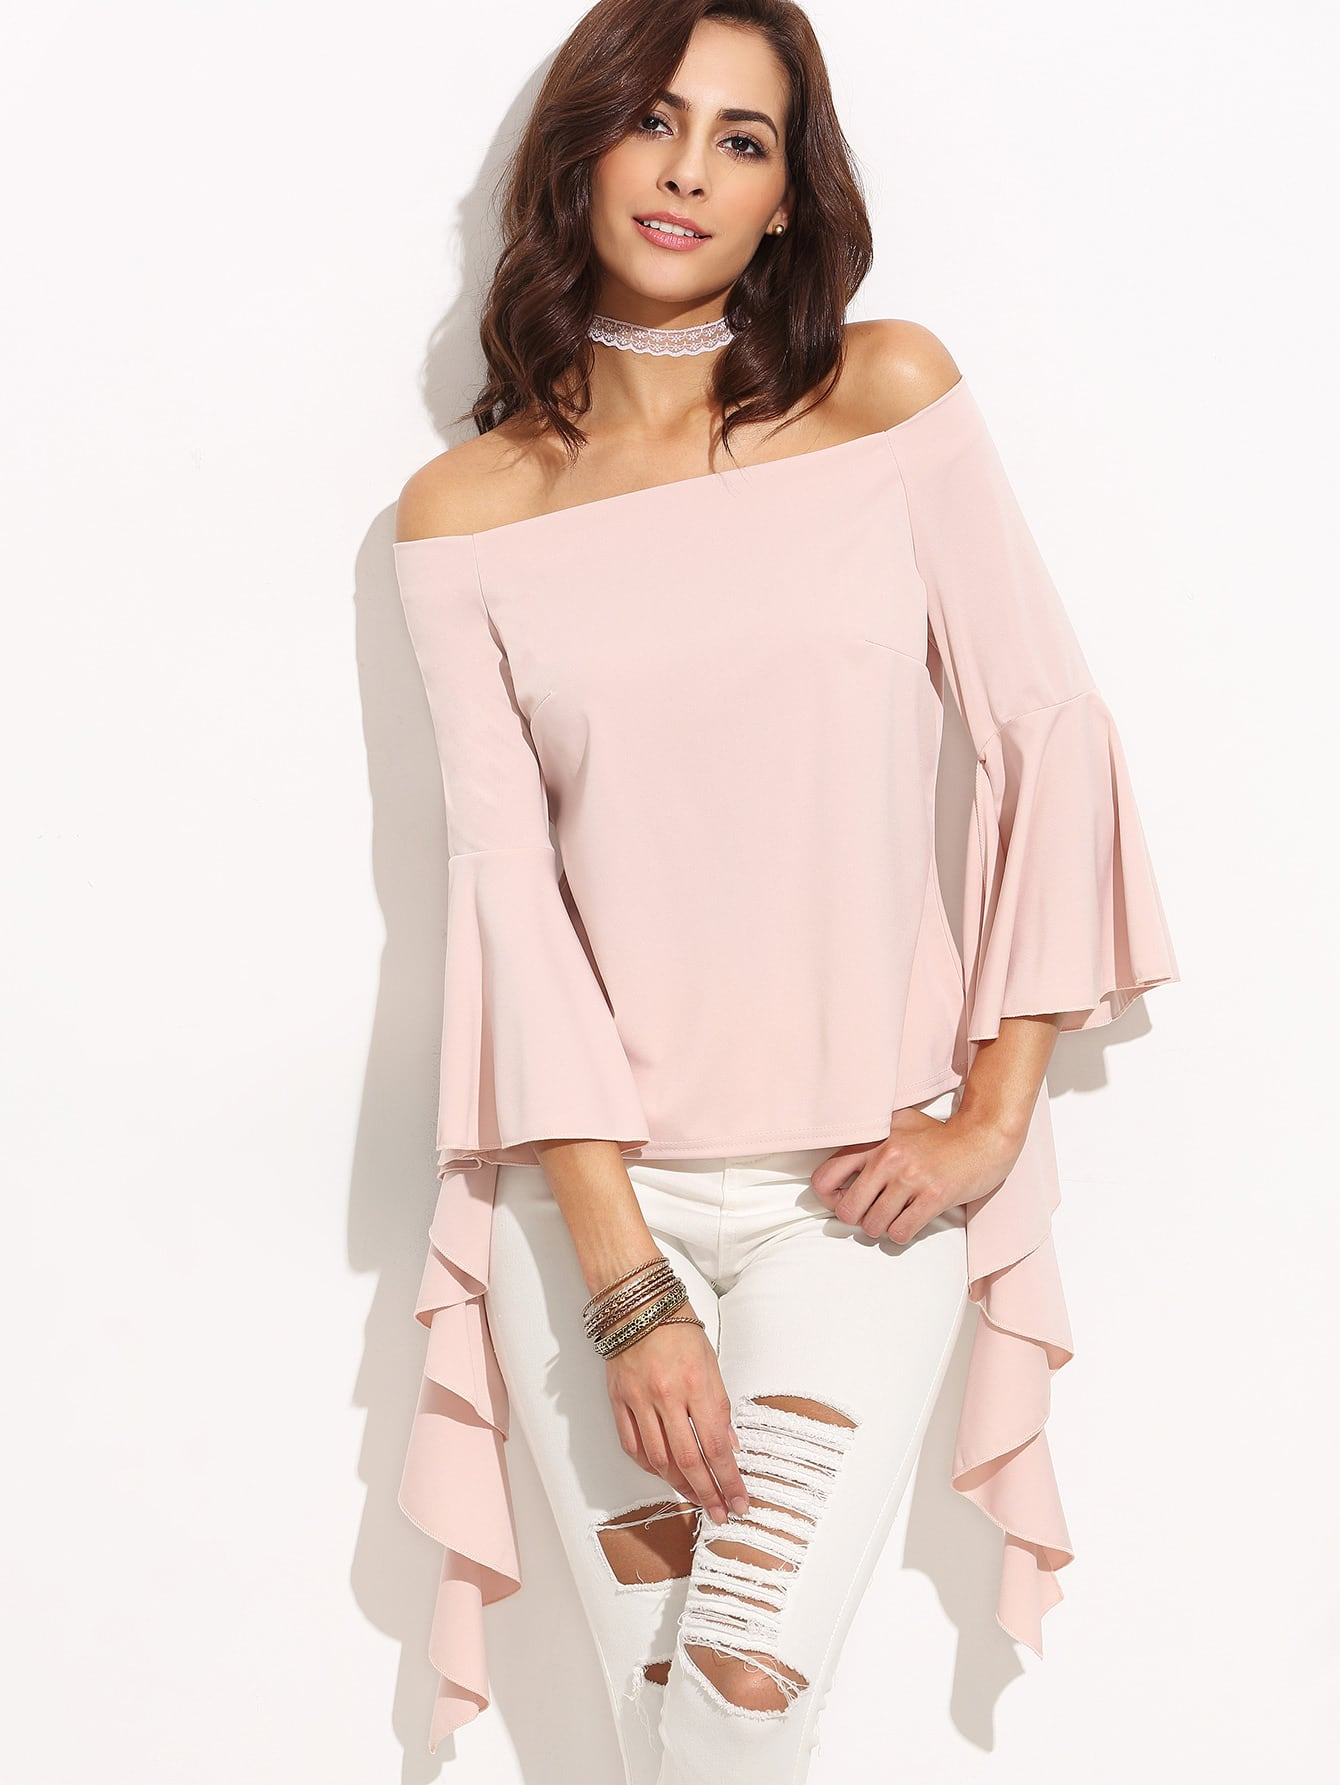 Pink Off The Shoulder Bell Sleeve Asymmetrical Blouse blouse160726301